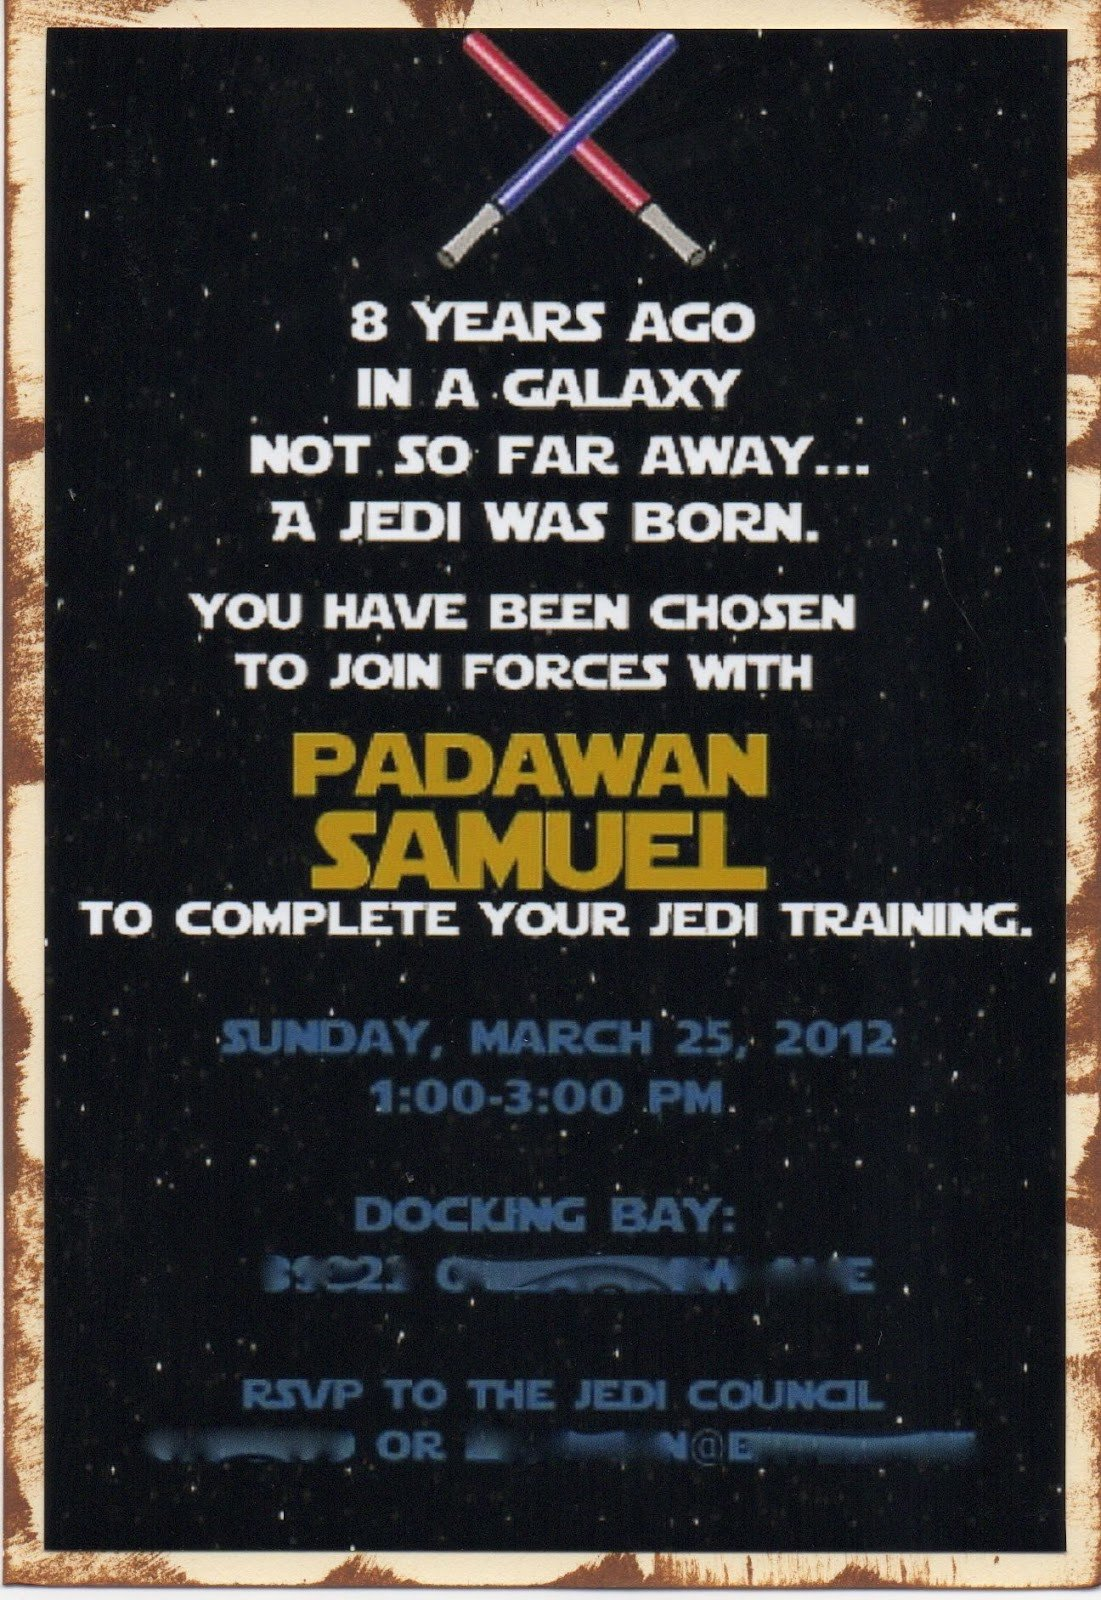 Star Wars Birthday Invitation Another Babin Creation Star Wars Birthday Invitation